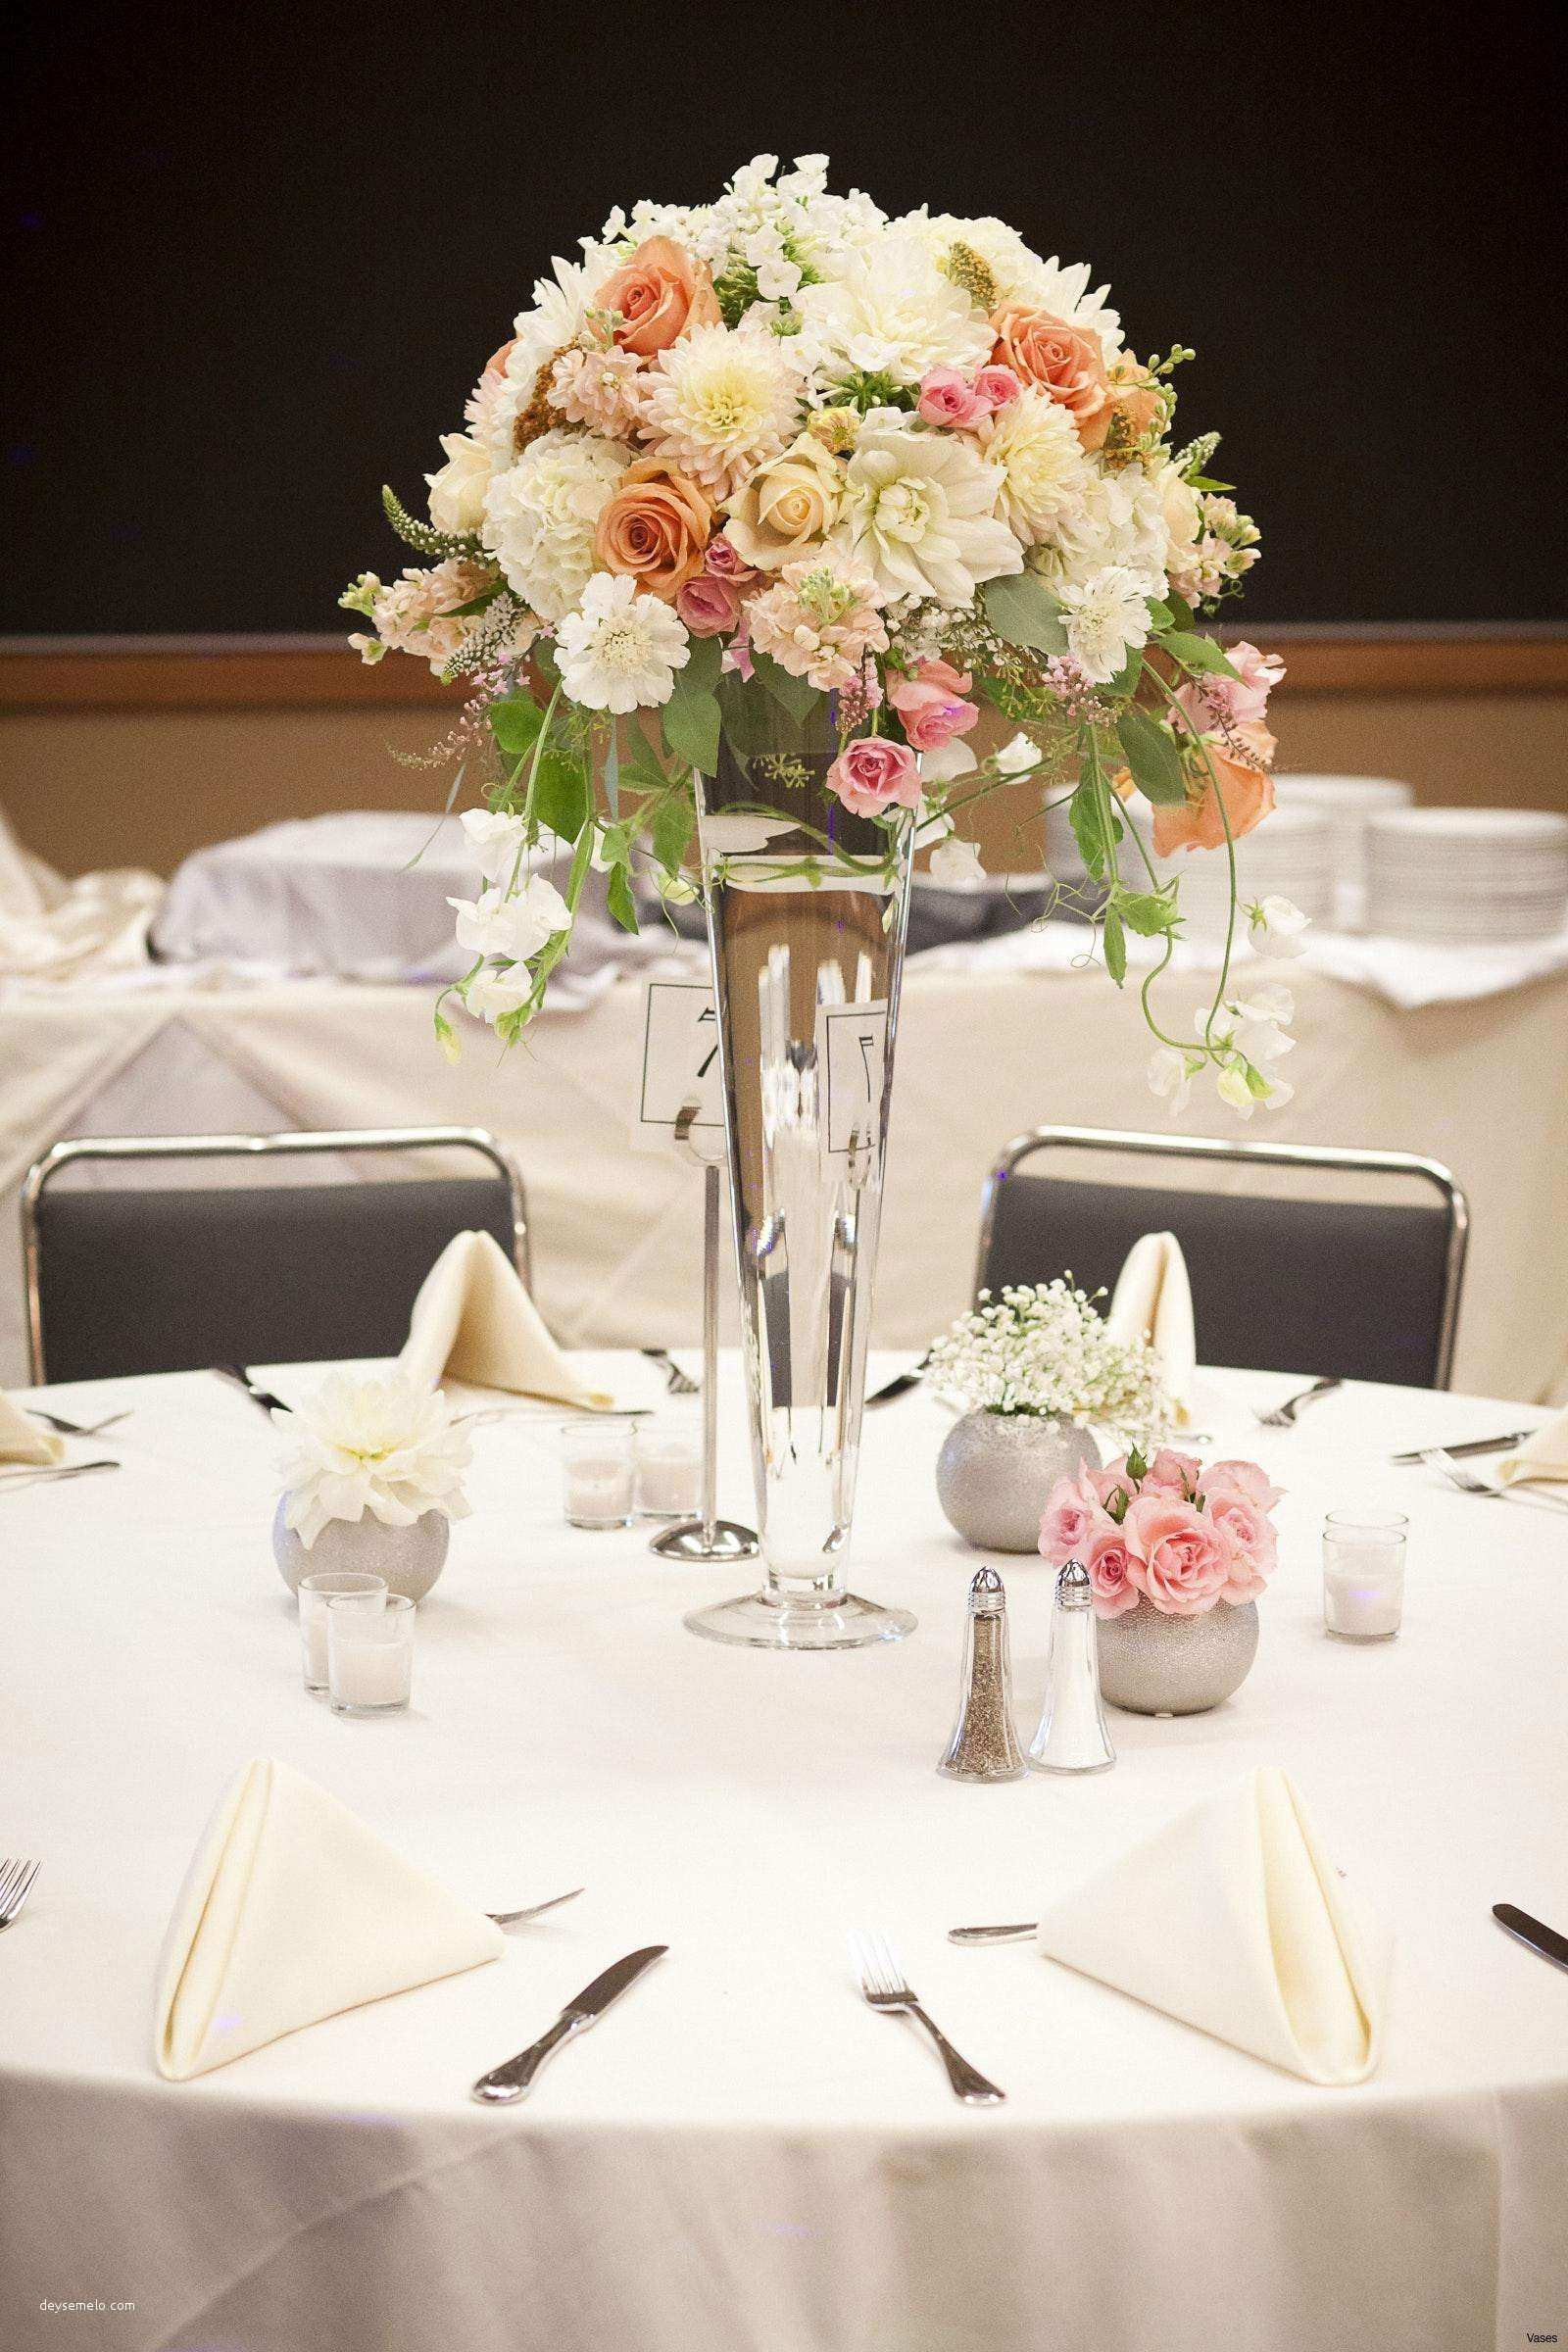 flower arrangements in clear vases of lovely bridal shower decorations from vases vase centerpieces ideas with regard to today bridal shower decorations of inspirational wedding shower decoration ideas living room vases